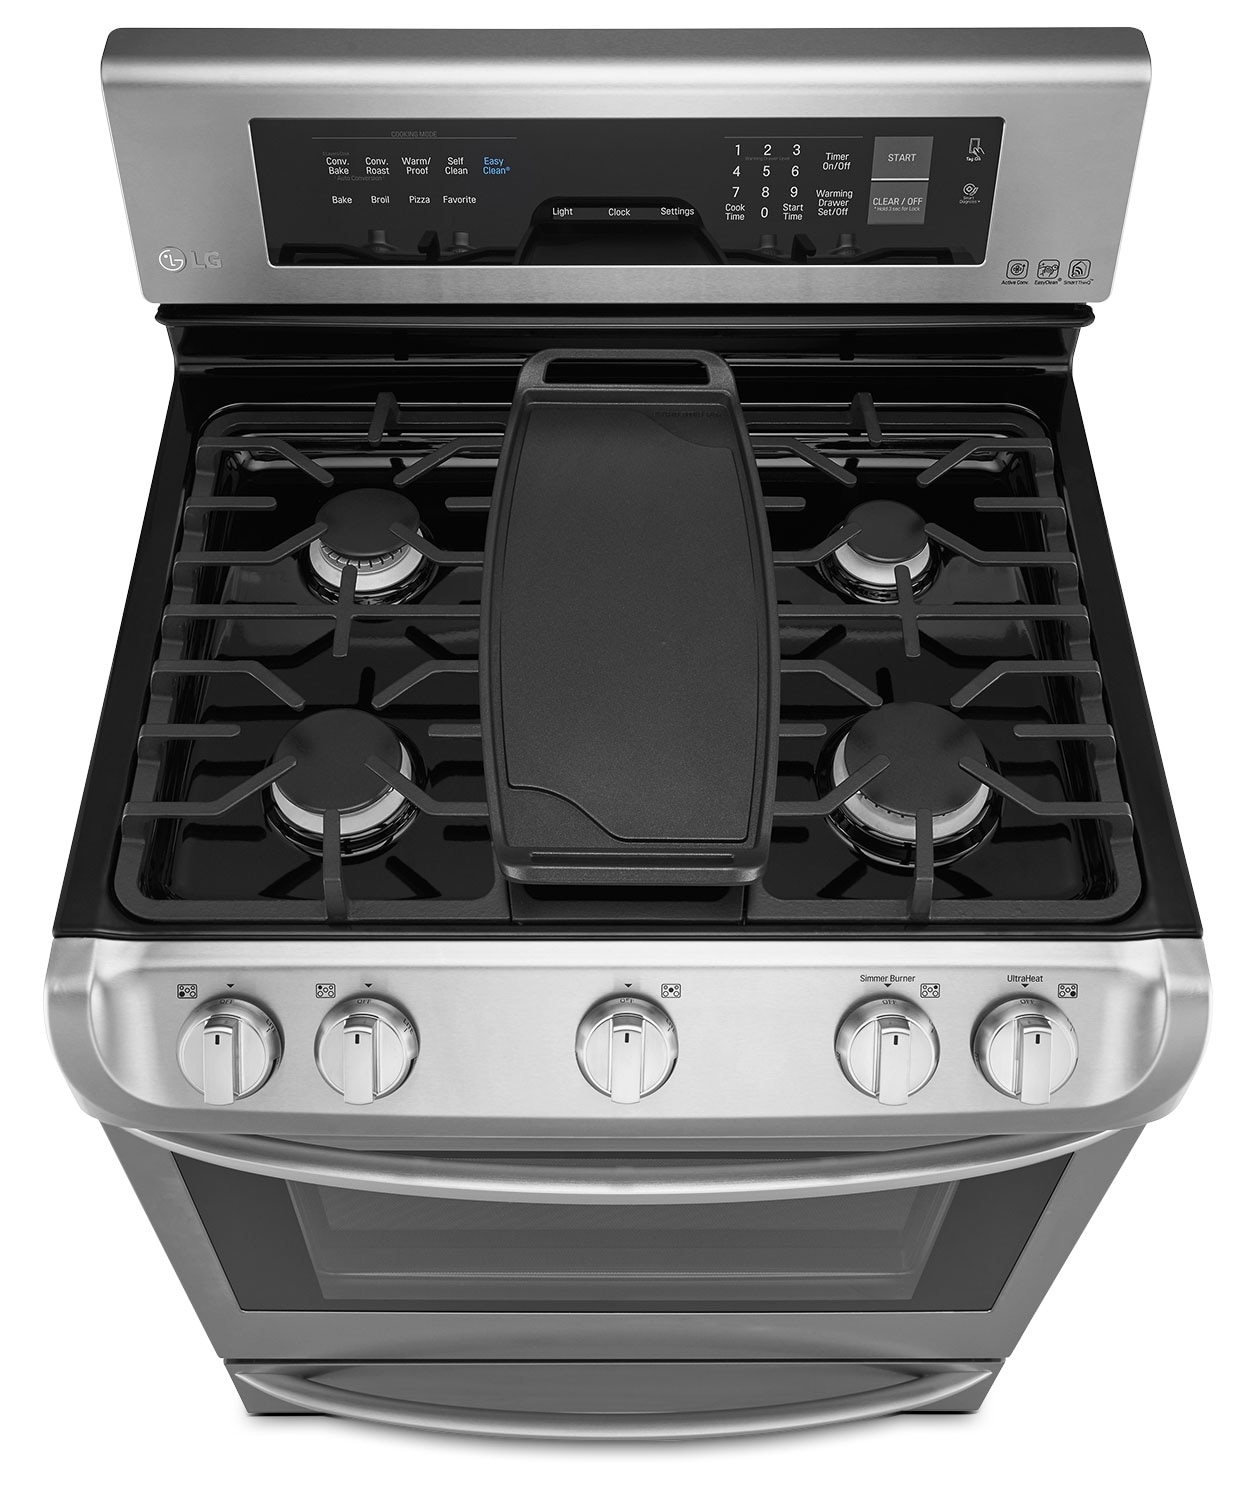 Gas Stainless Steel Cooktop Lg 63 Cu Ft Freestanding Gas Convection Range Stainless Steel